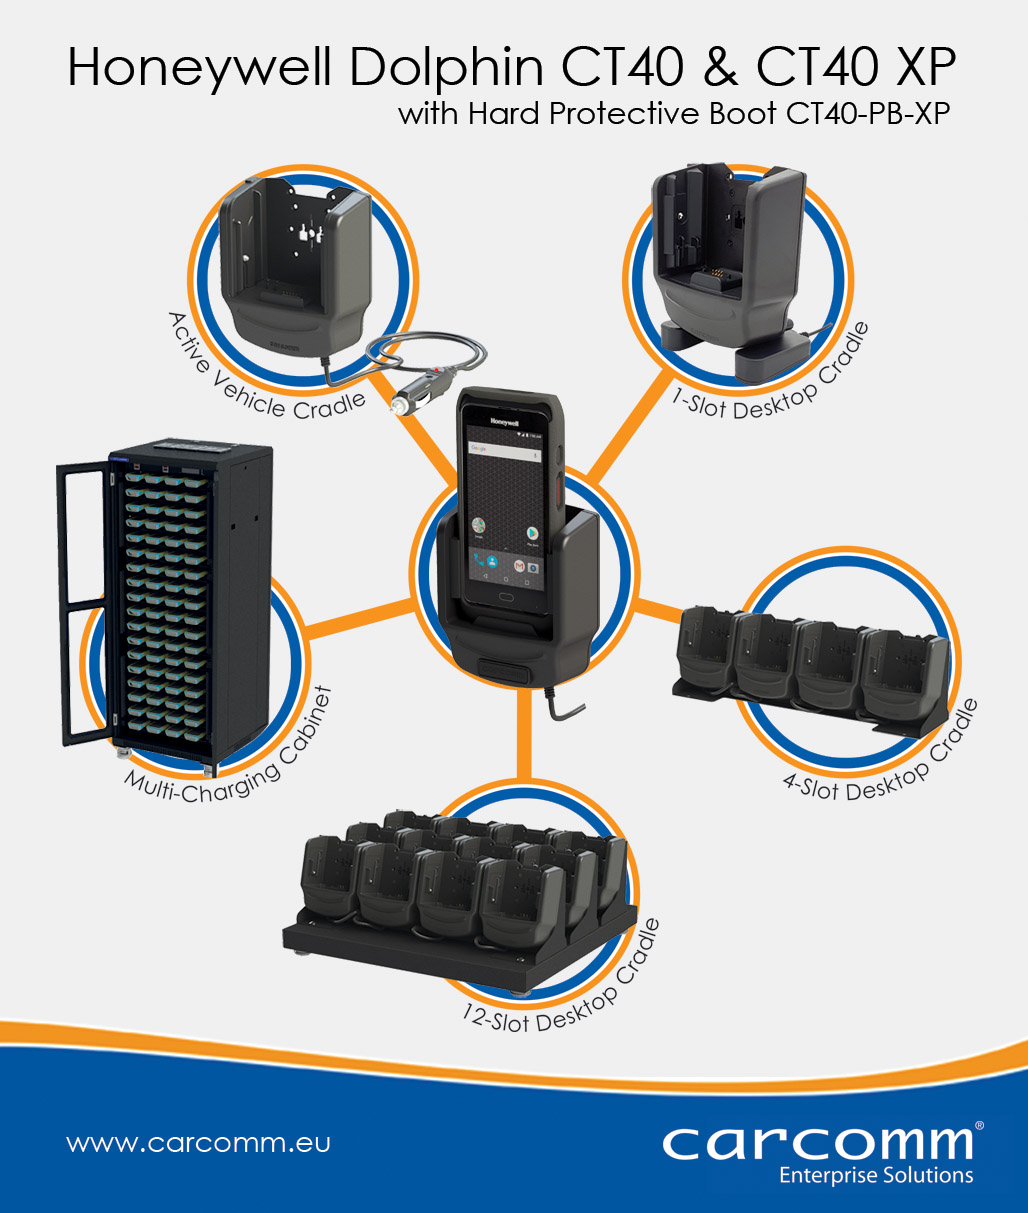 Honeywell Dolphin CT40 & Honyewell Dolphin CT40 XP Charging Solutions